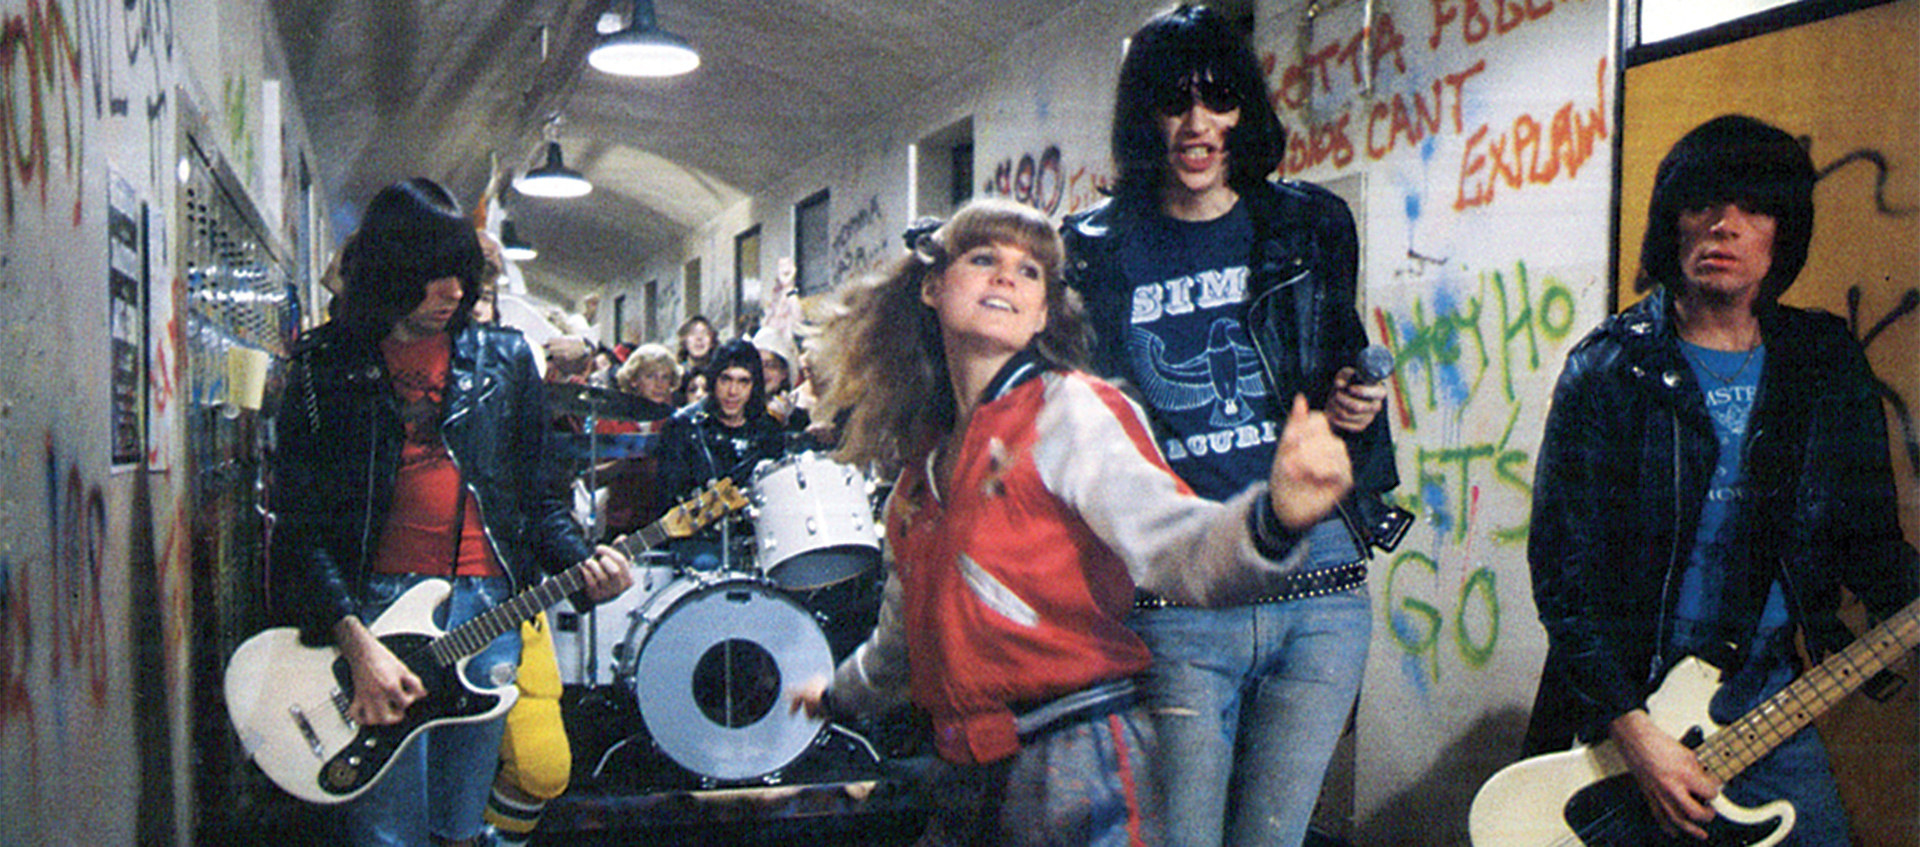 The Ramones playing in a hallway in the film Rock 'n' Roll High School.